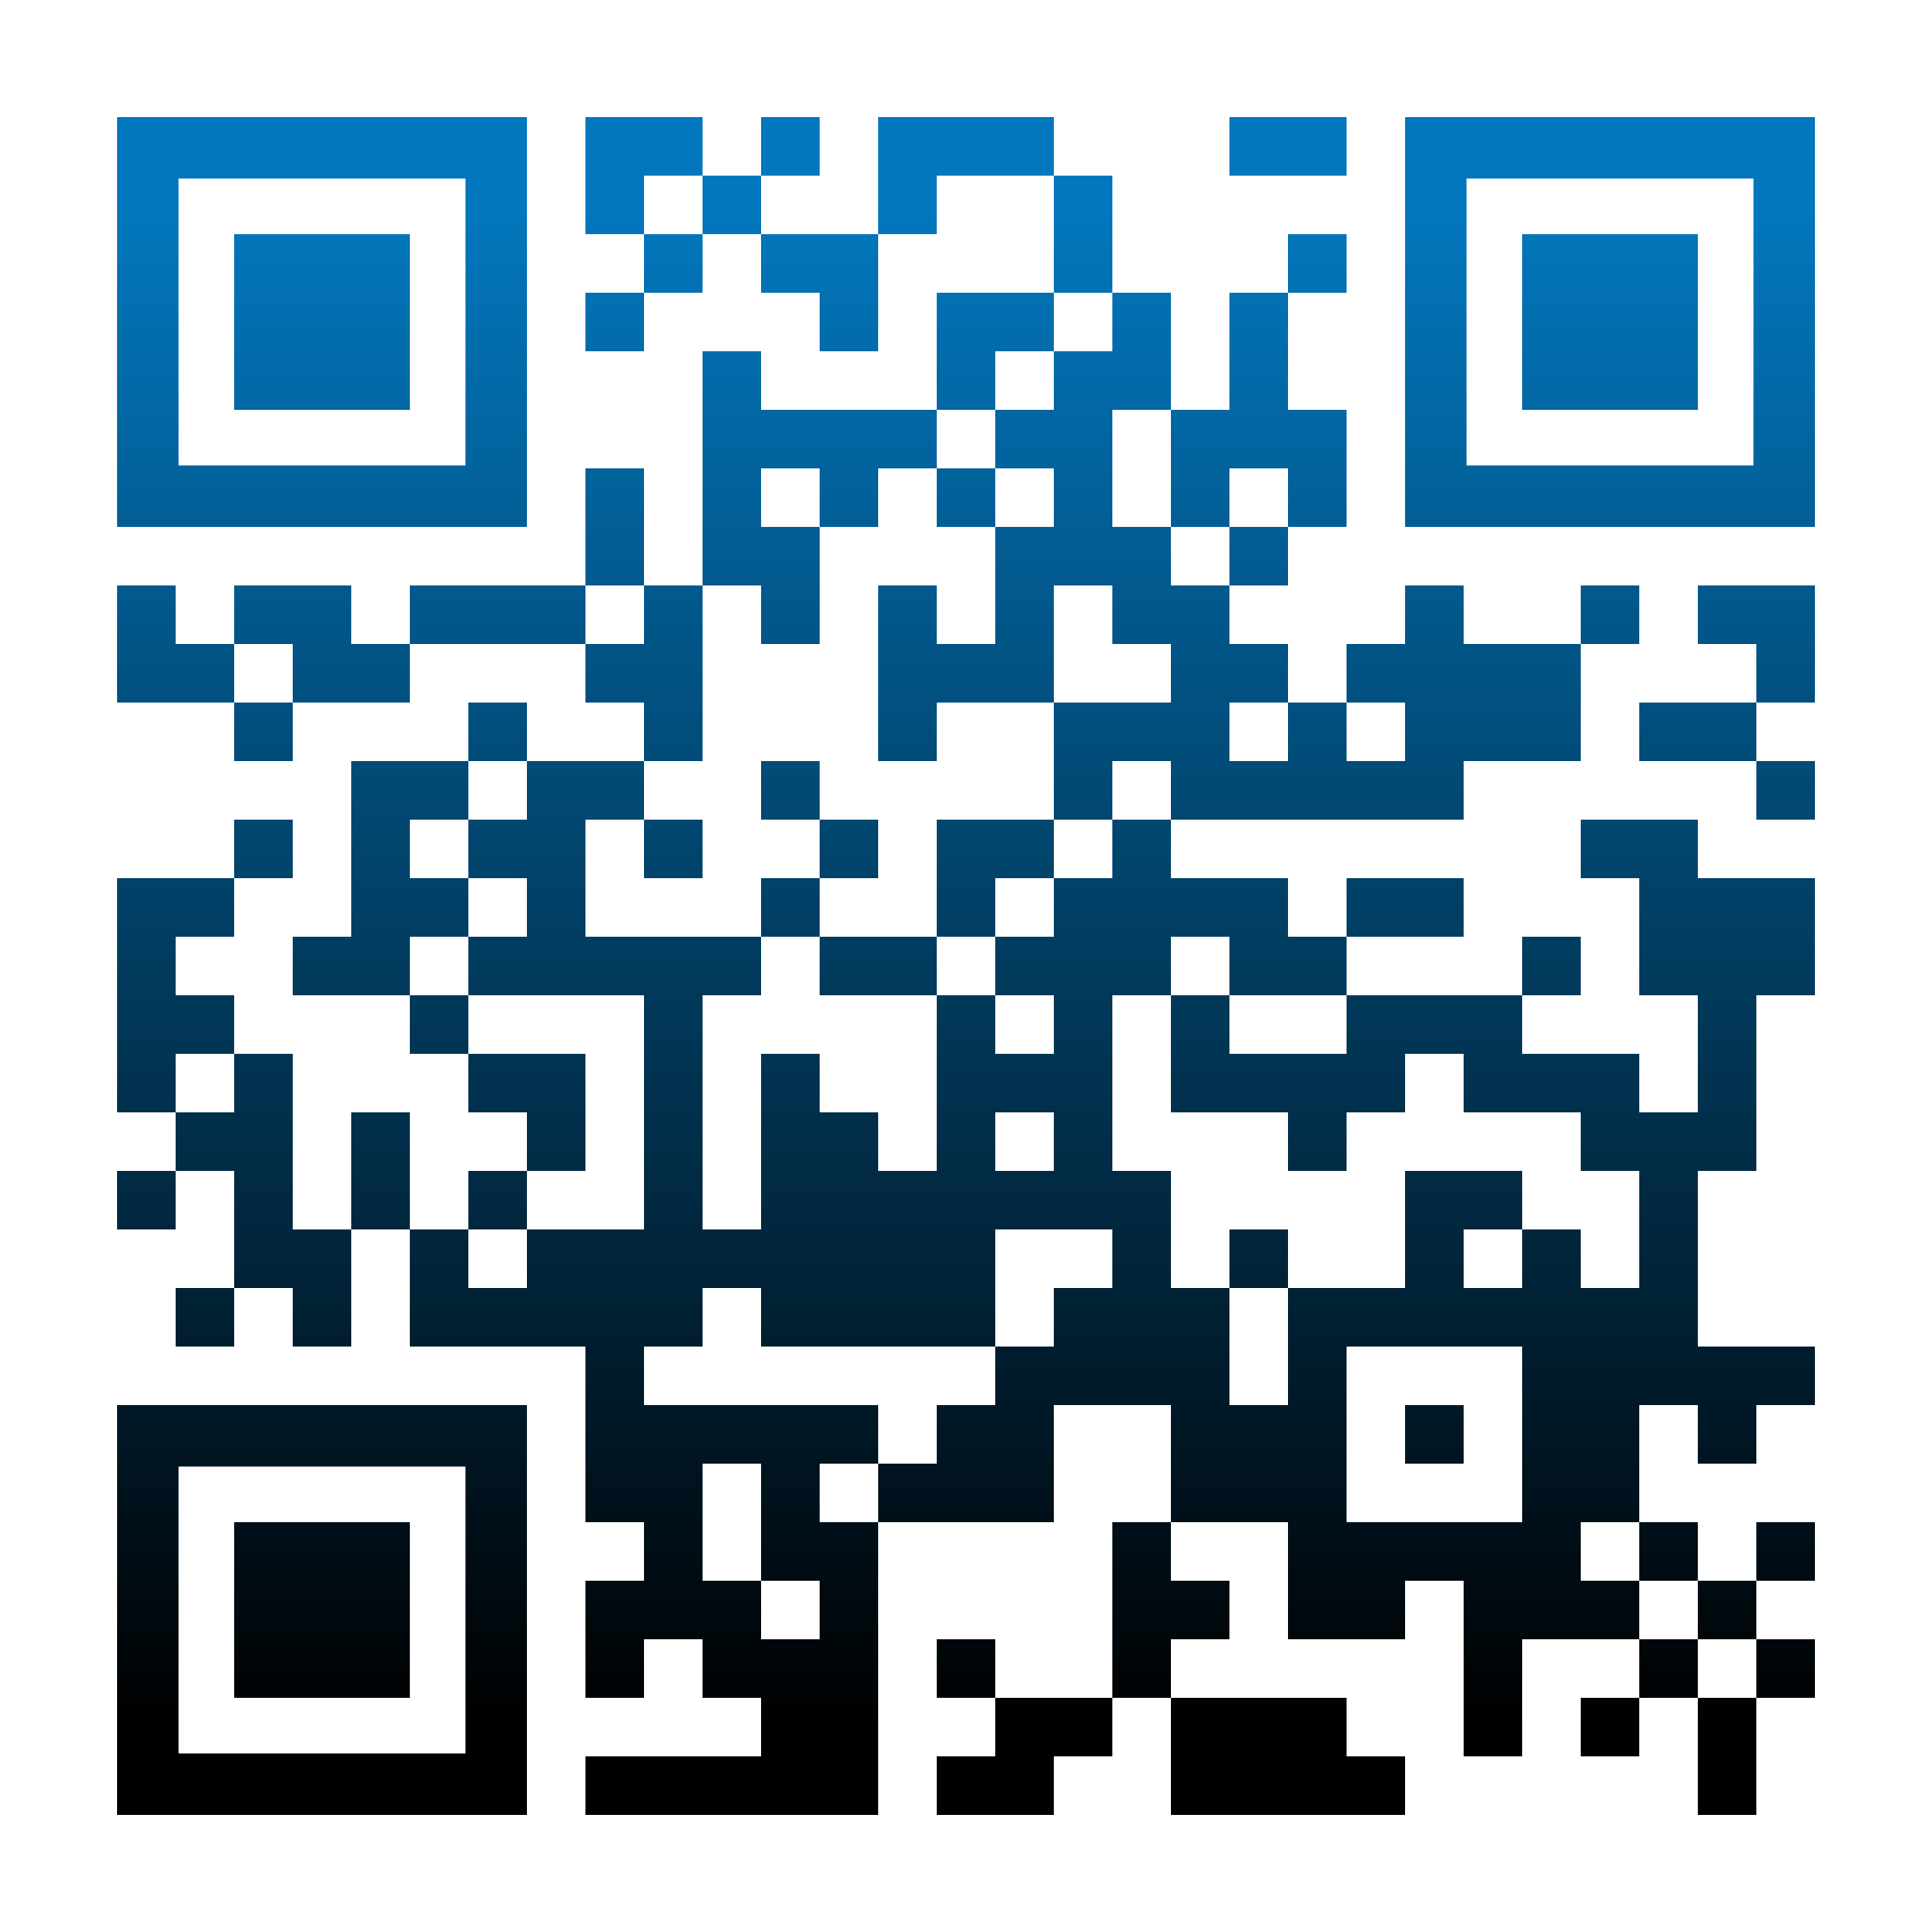 <a href ='http://go.biznet.id/orderform' target='_blank'>Order Form - Biznet</a><br/><small><b>*click QR Code to enlarged</b></small>